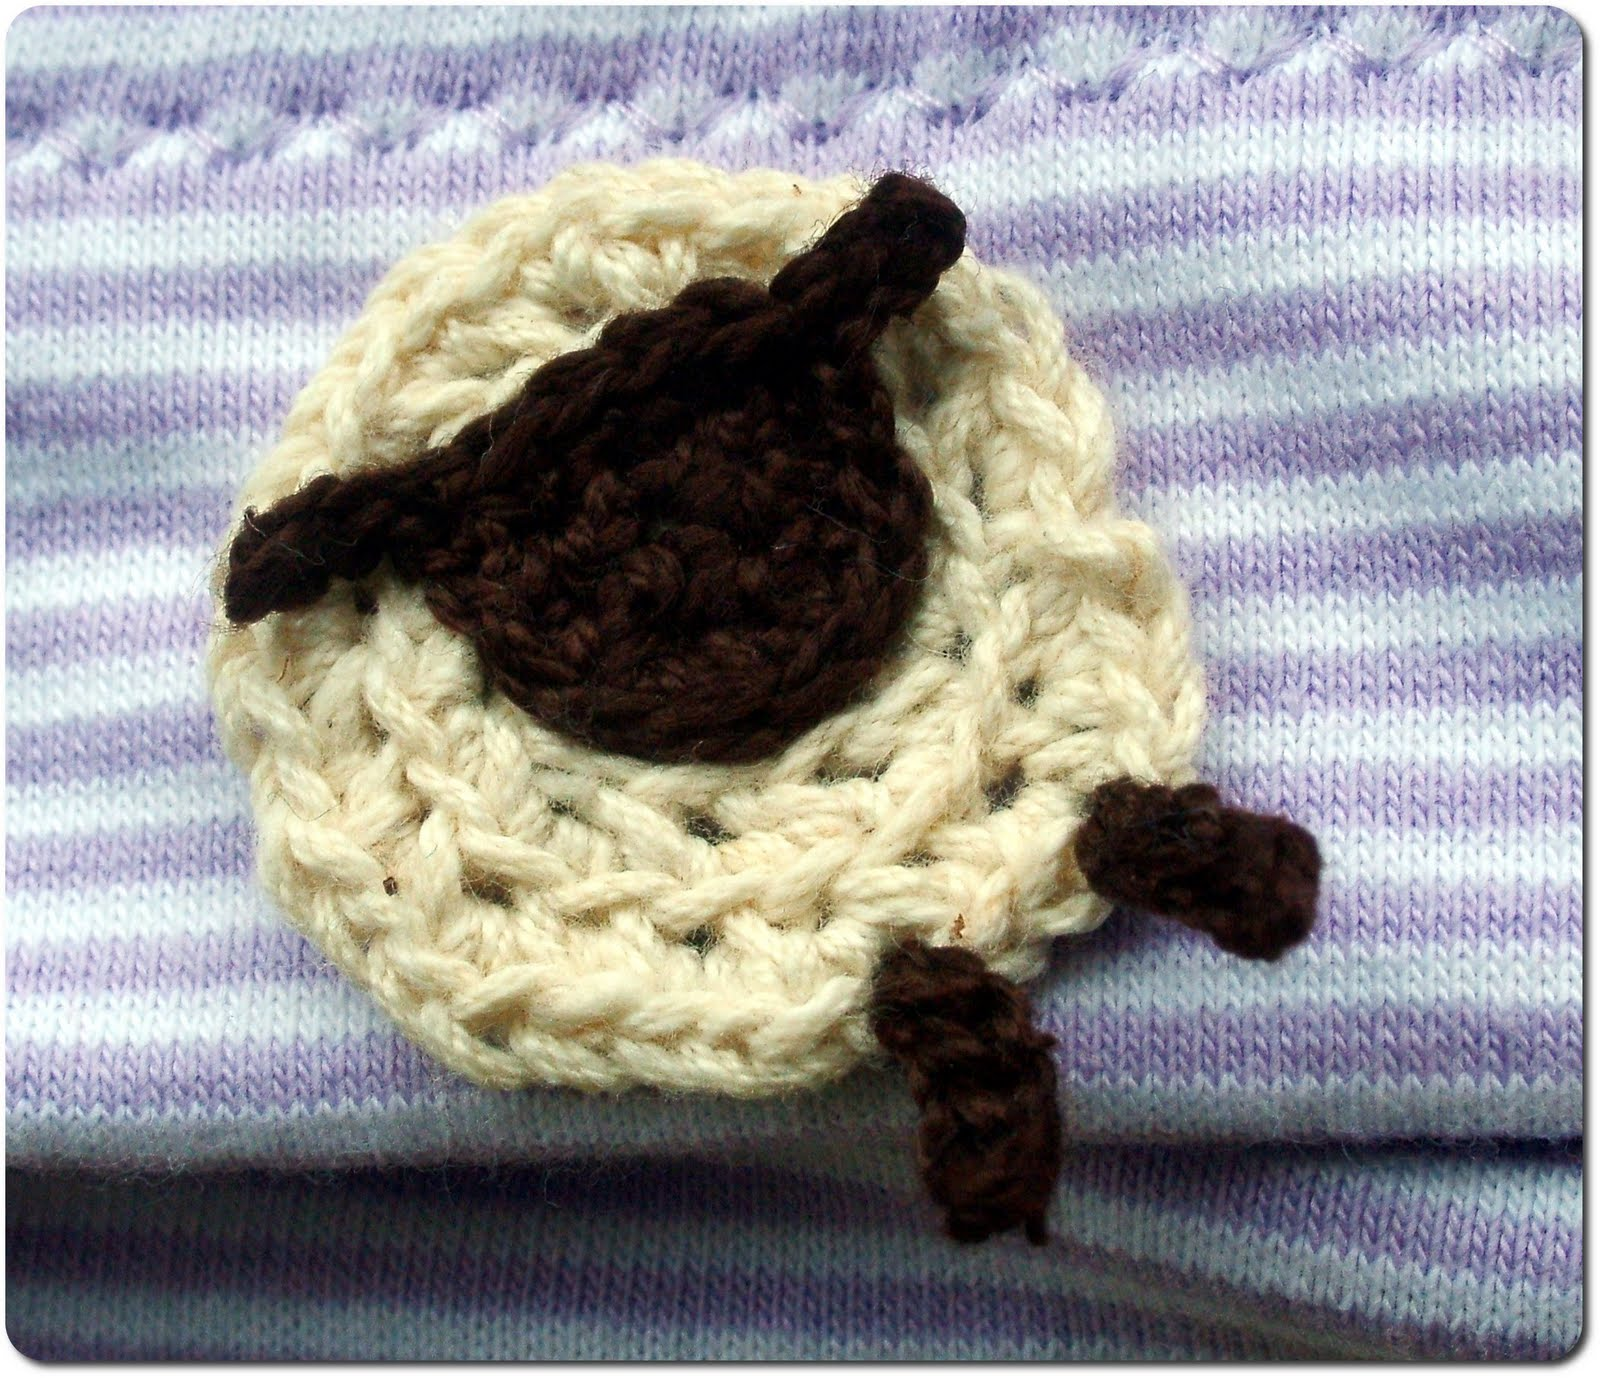 Crochet Pattern For Baby Lamb Hat : Muffins and More: Baby hat with crocheted sheep applique